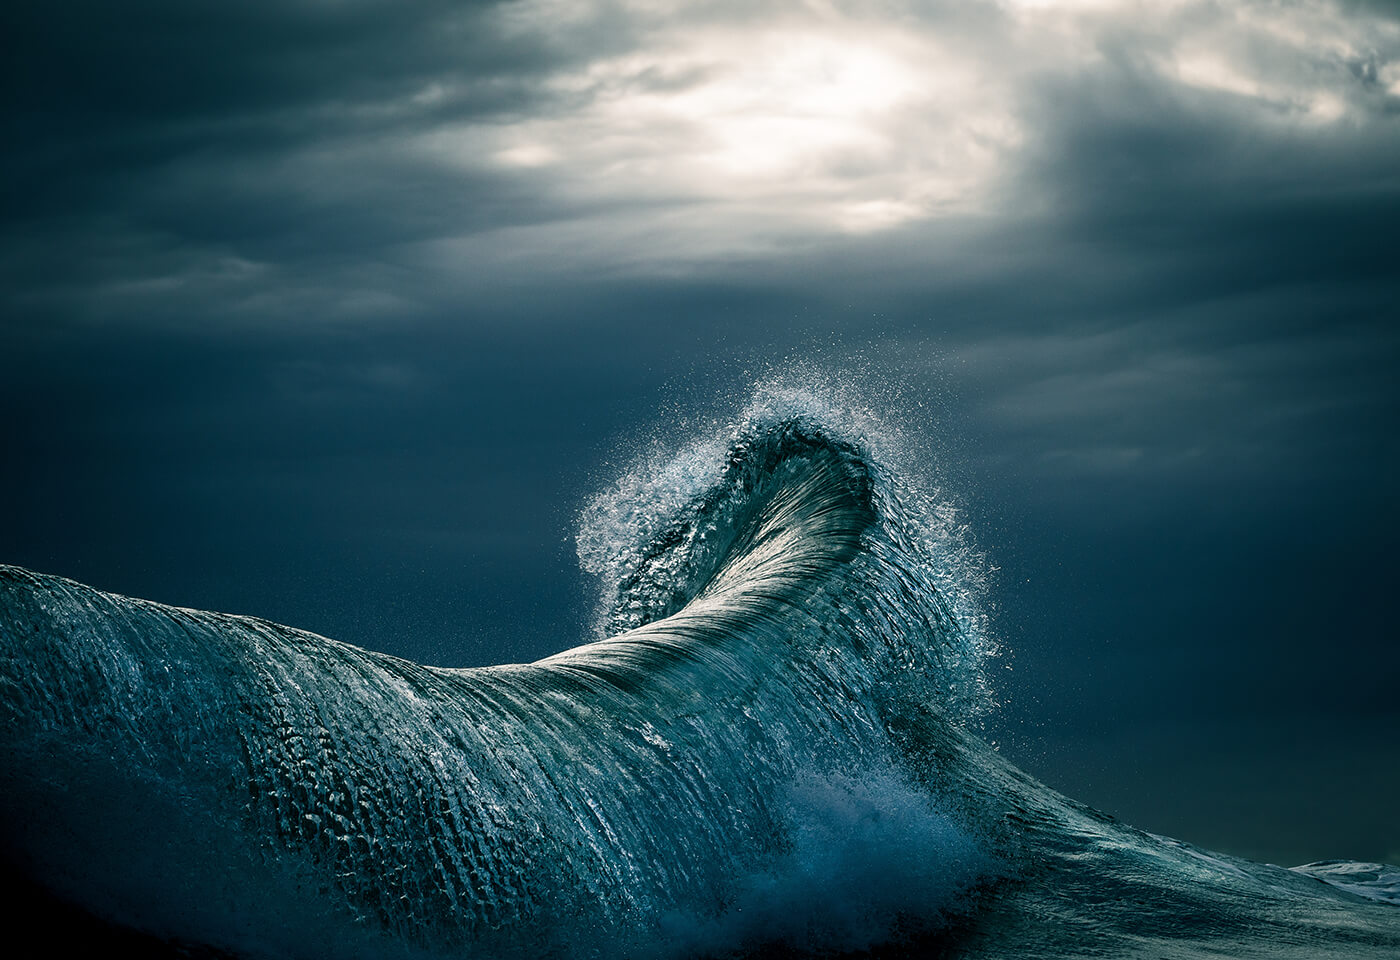 Landscape image of wave